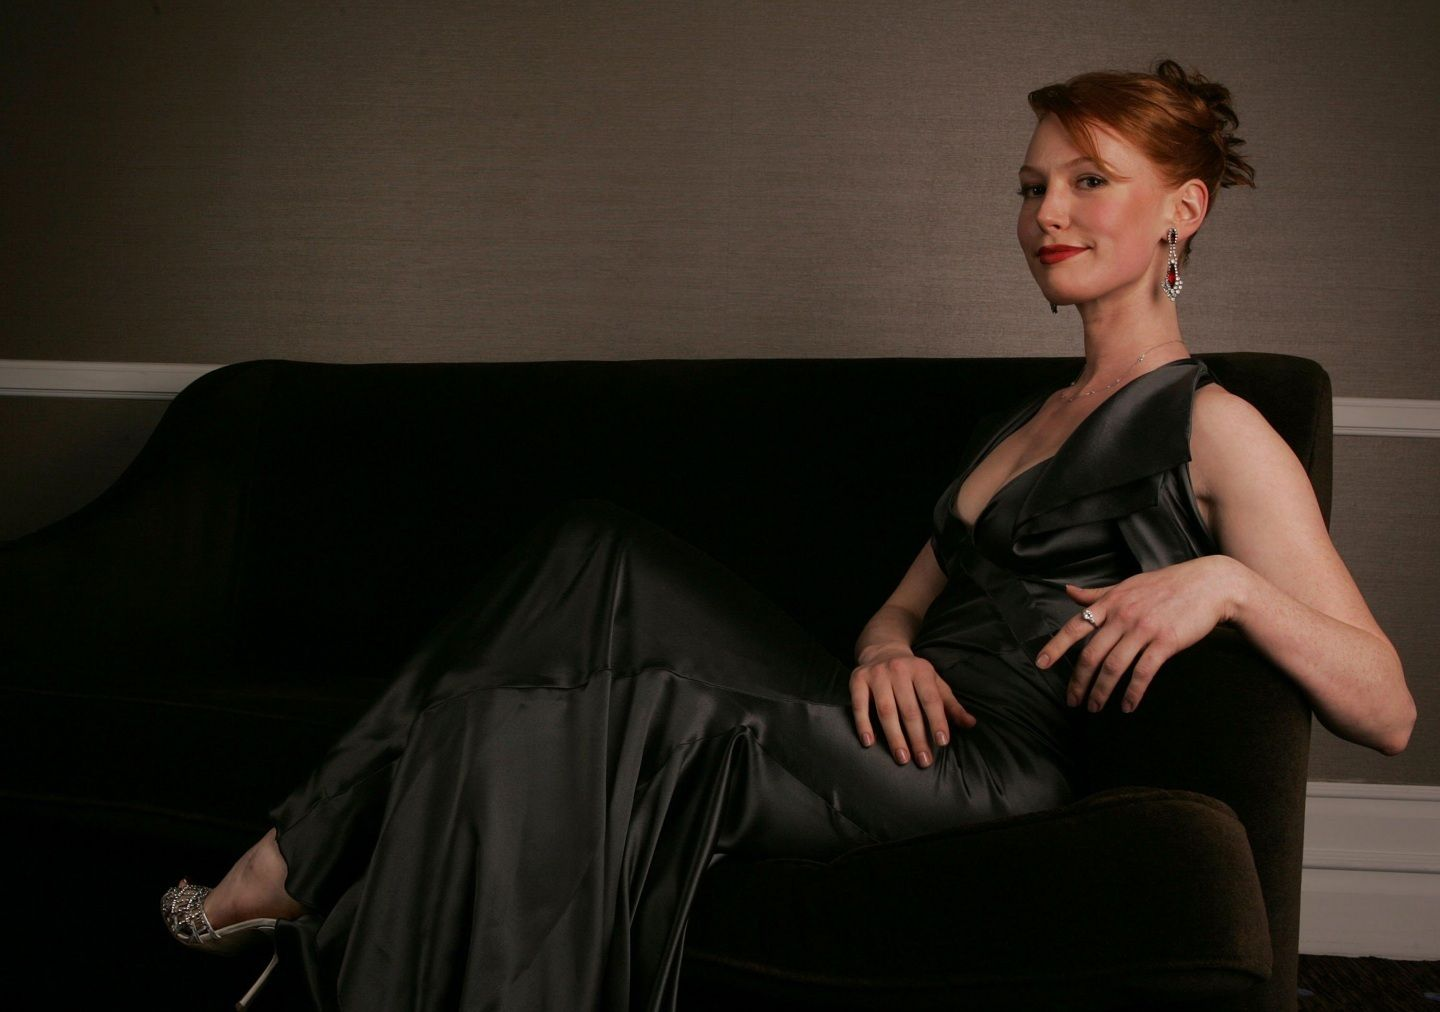 Alicia witt clothing costume makeup modeling pinterest